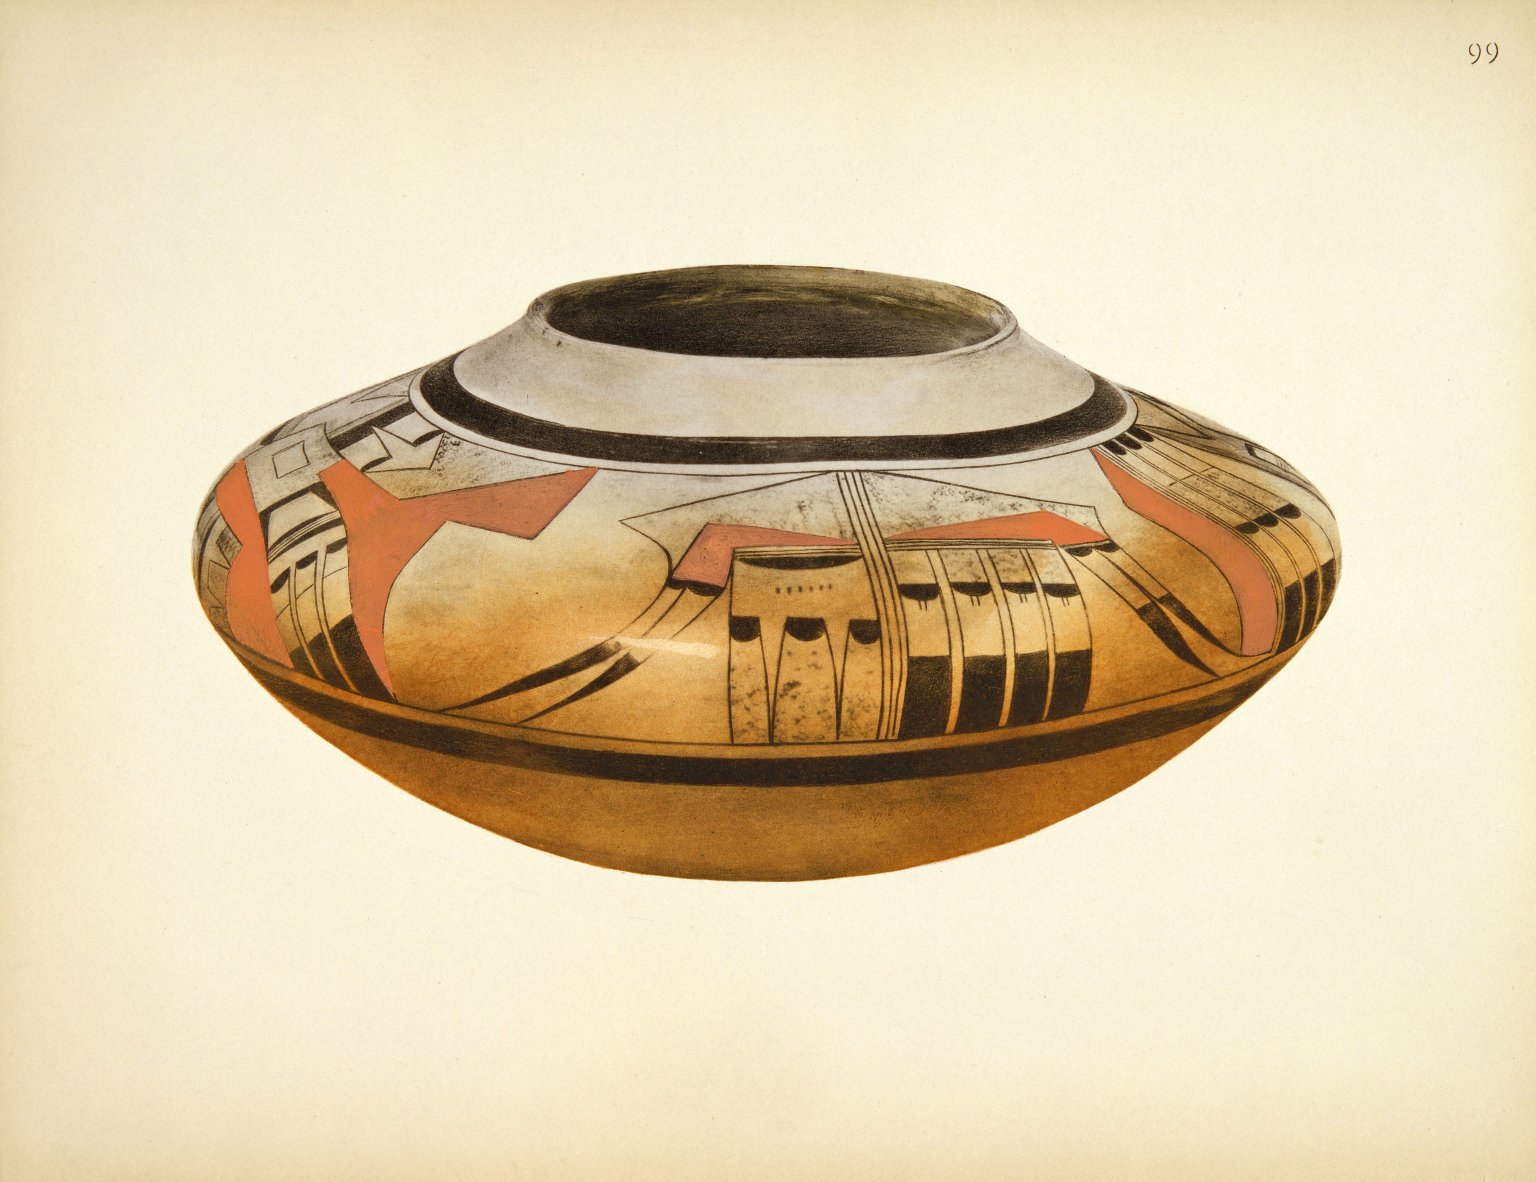 Pueblo Indian Pottery; 50 reproductions in color from specimen in the famous collection of the Indian arts fund